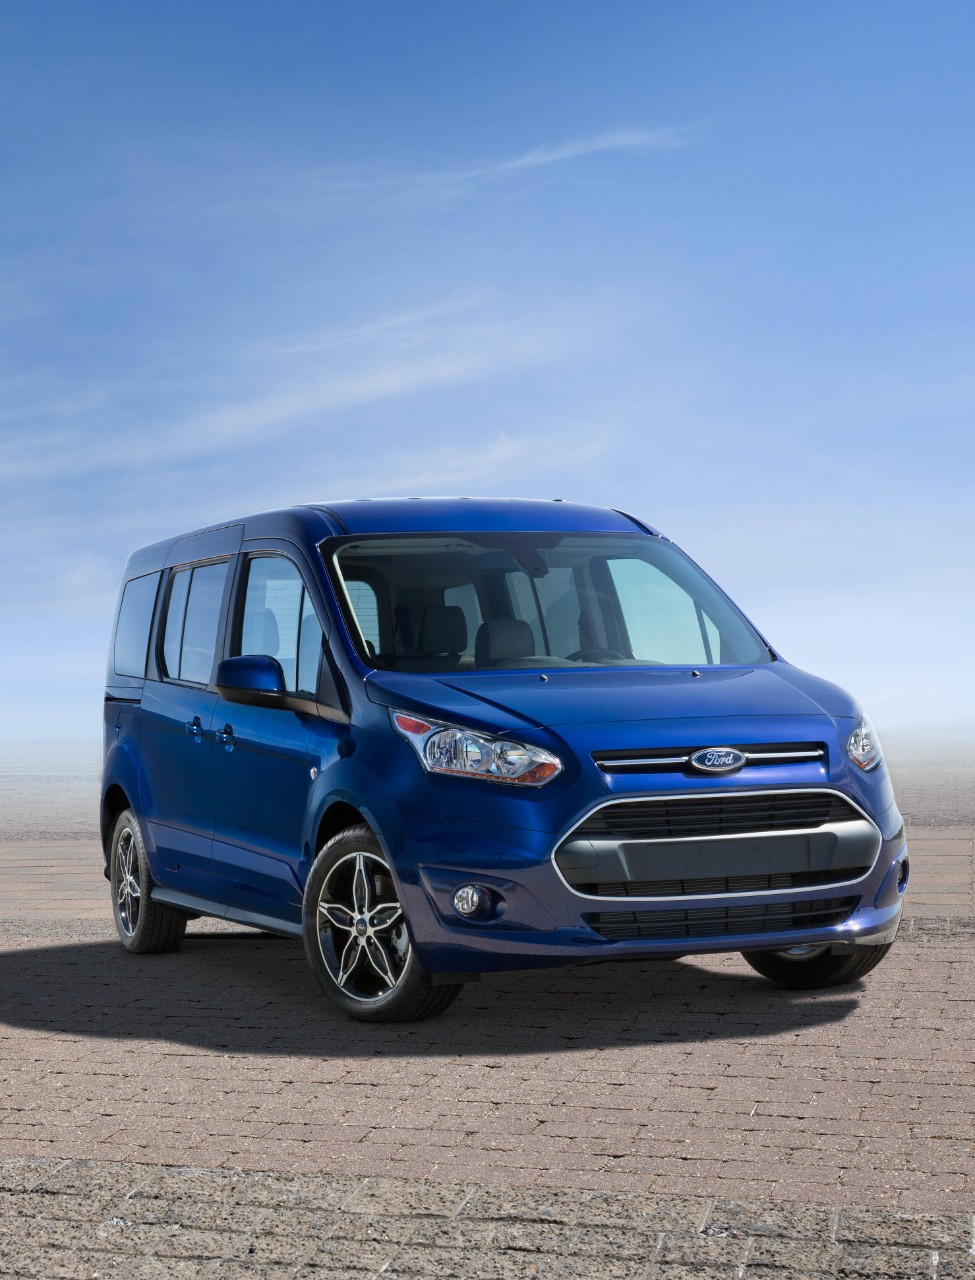 2017 Ford Transit Connect Taxi photo - 3